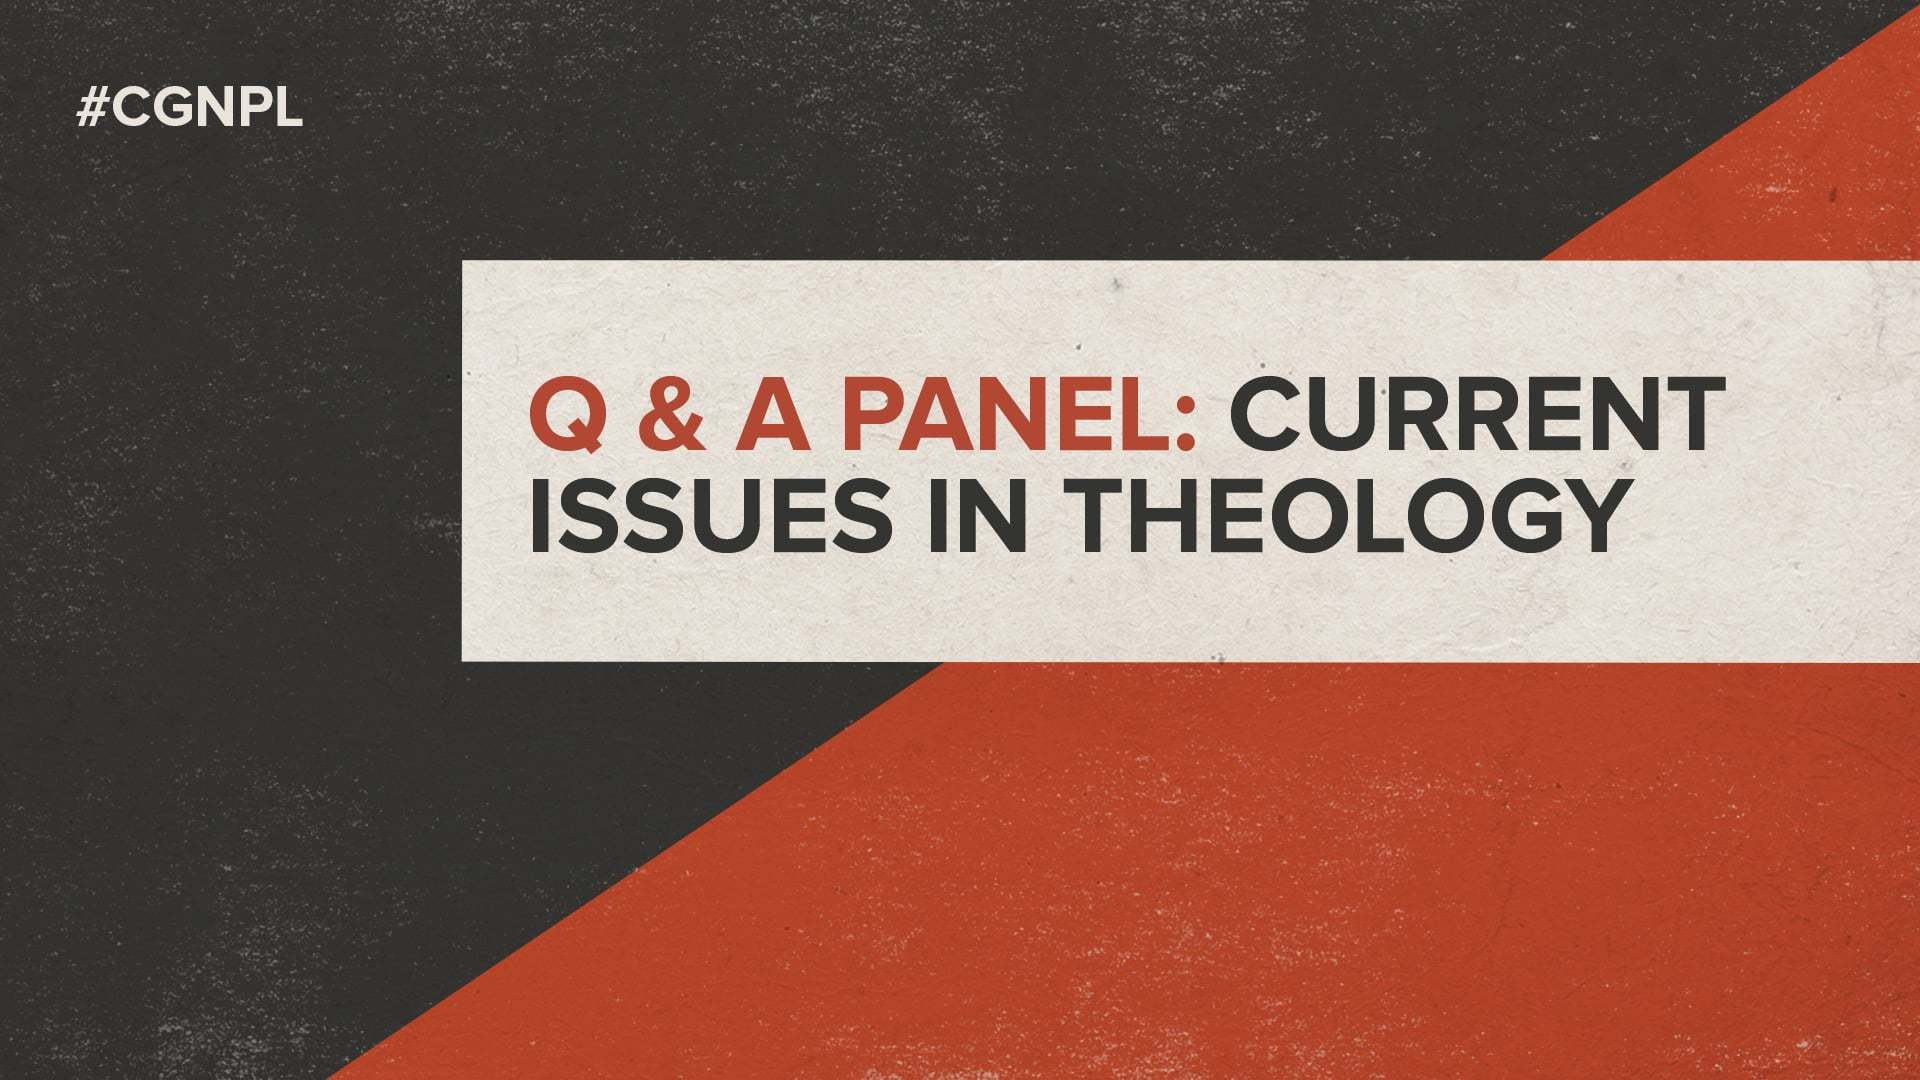 Q&A Panel: Current Issues in Theology